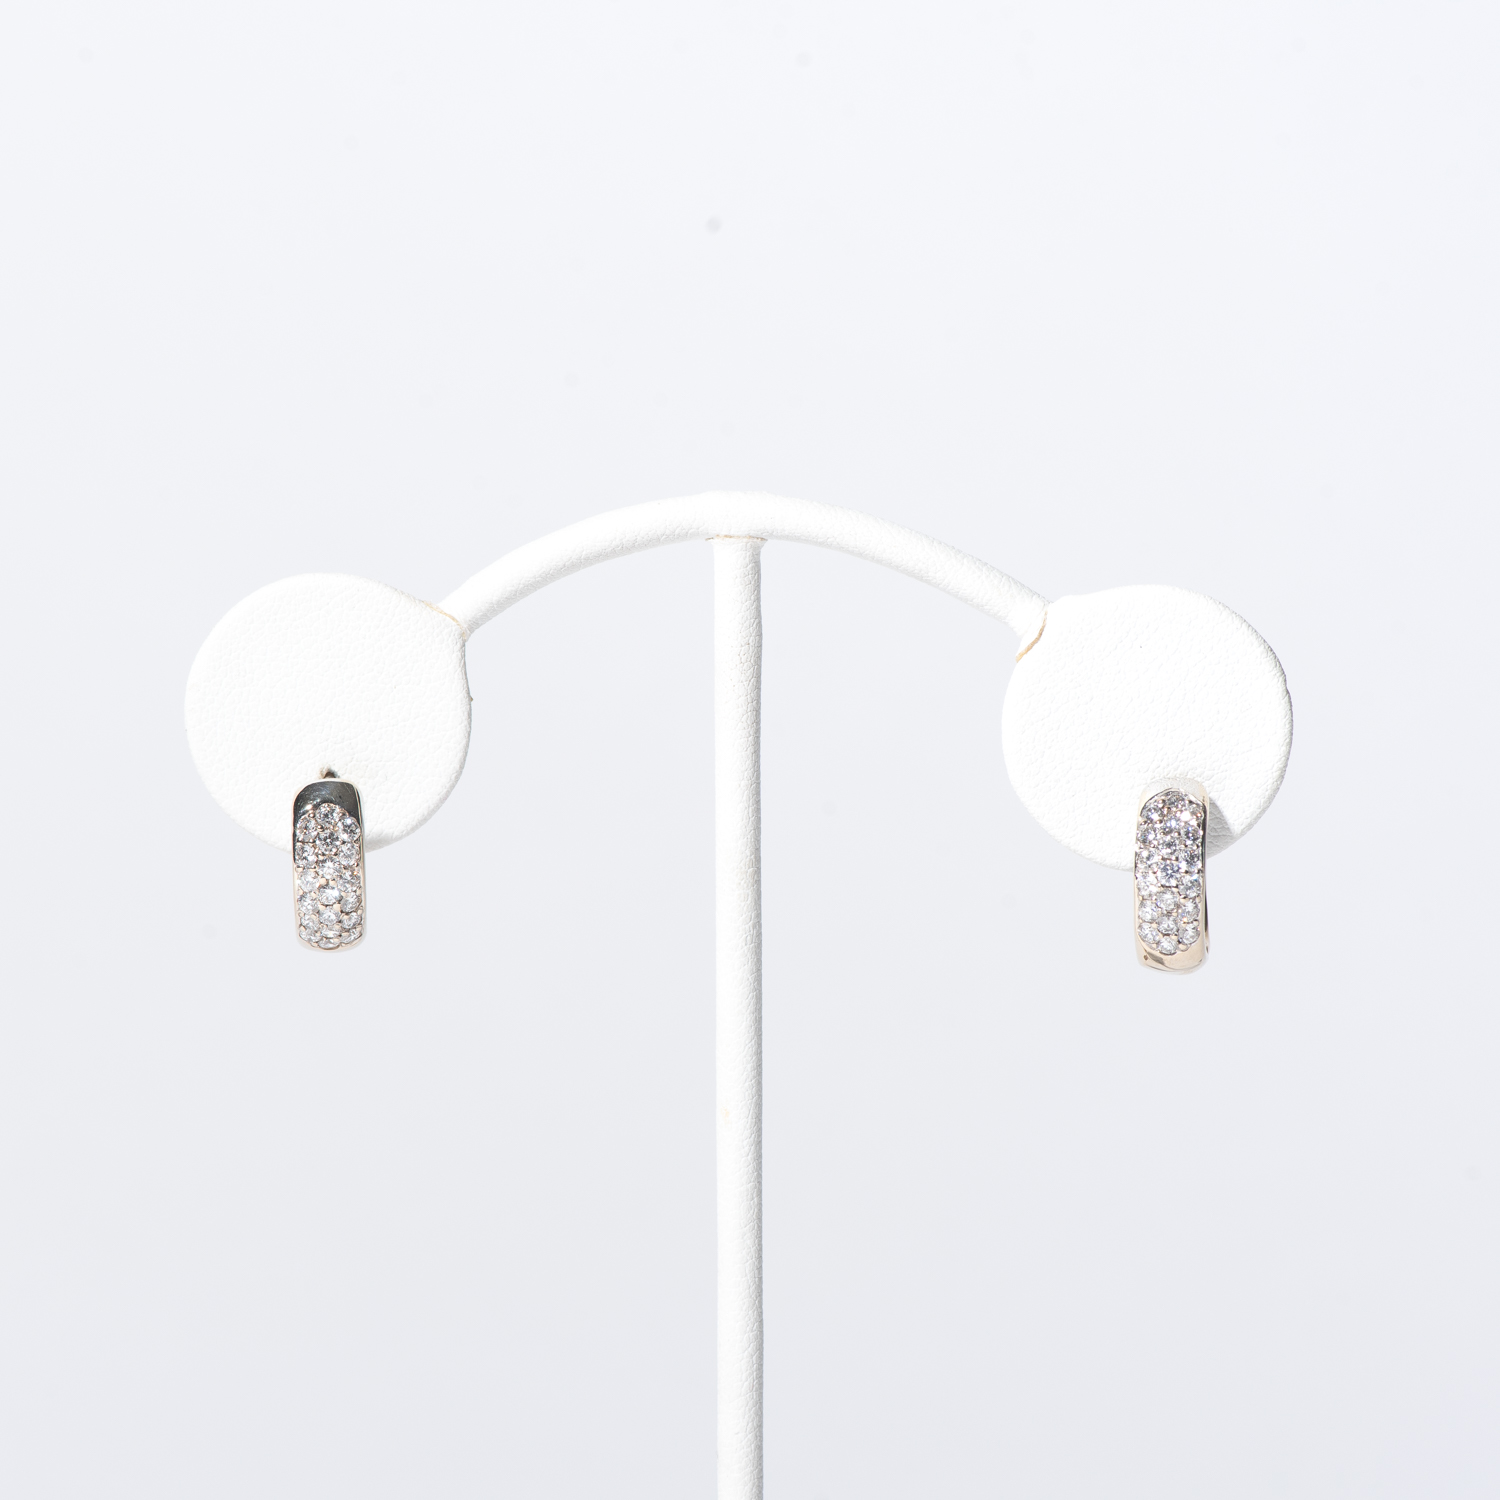 Design Sixteen. - This is dummy text to describe the earrings.